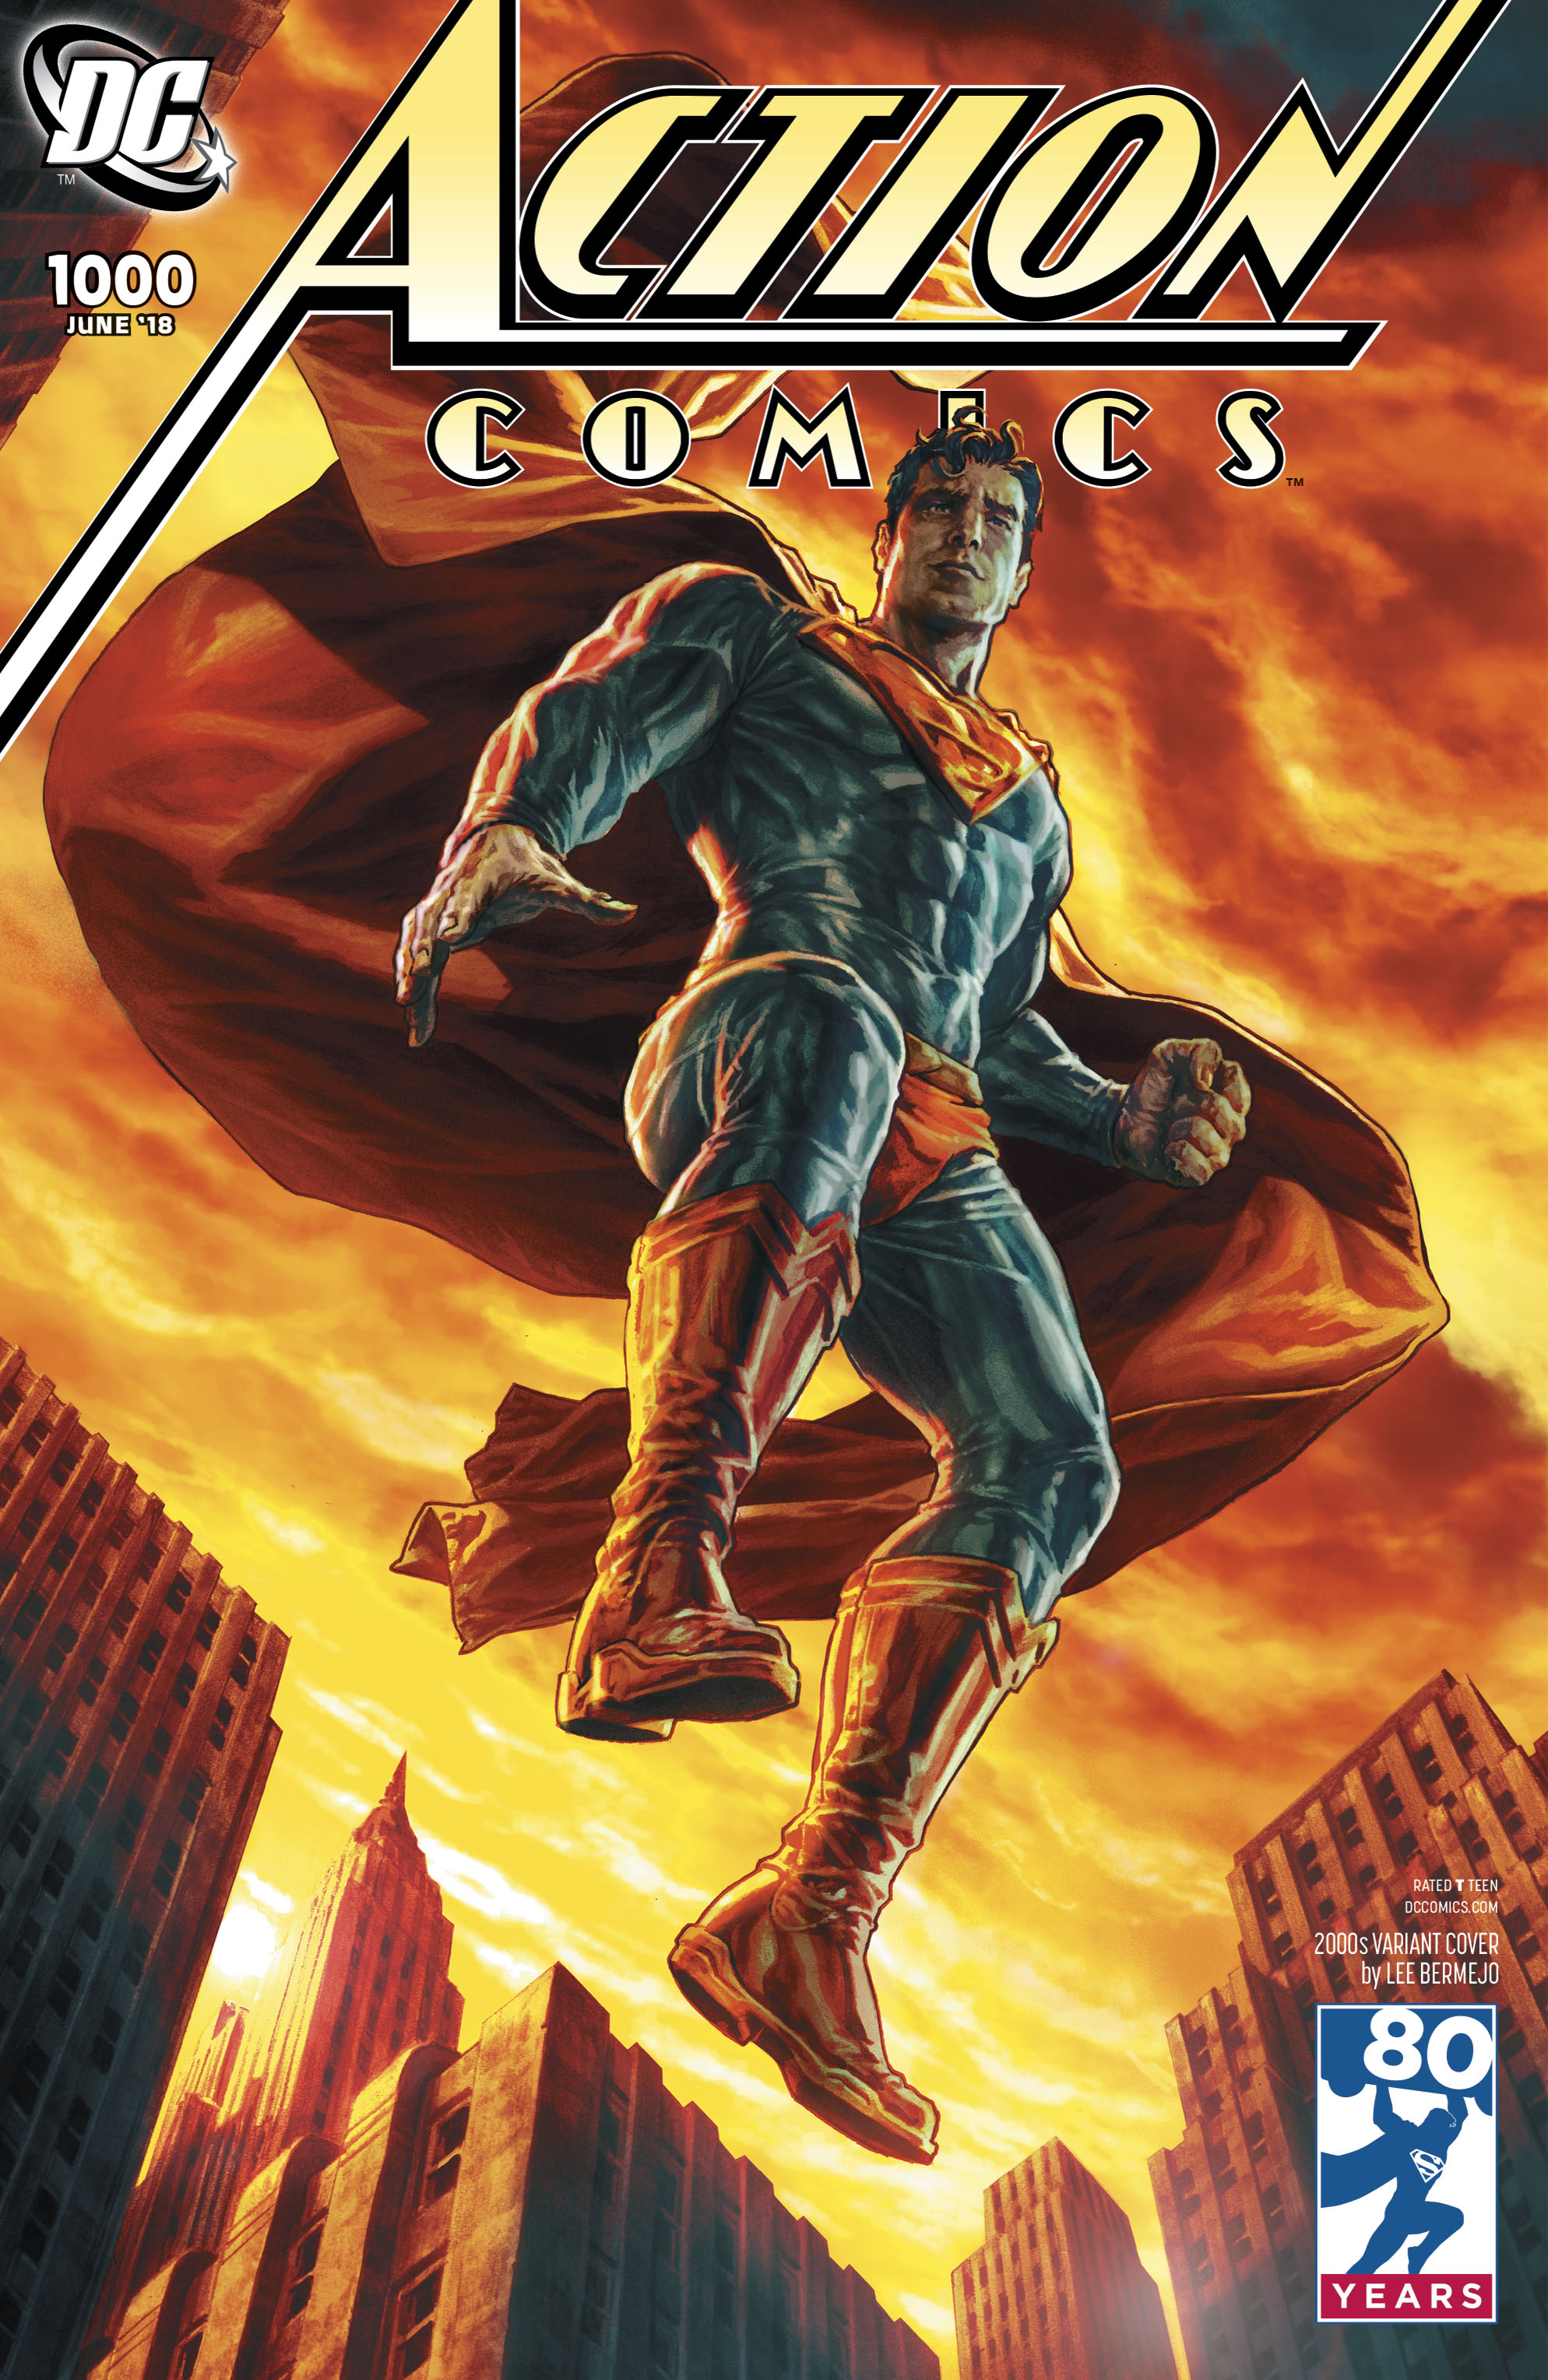 Complete List Of Action Comics 1000 Variant Covers